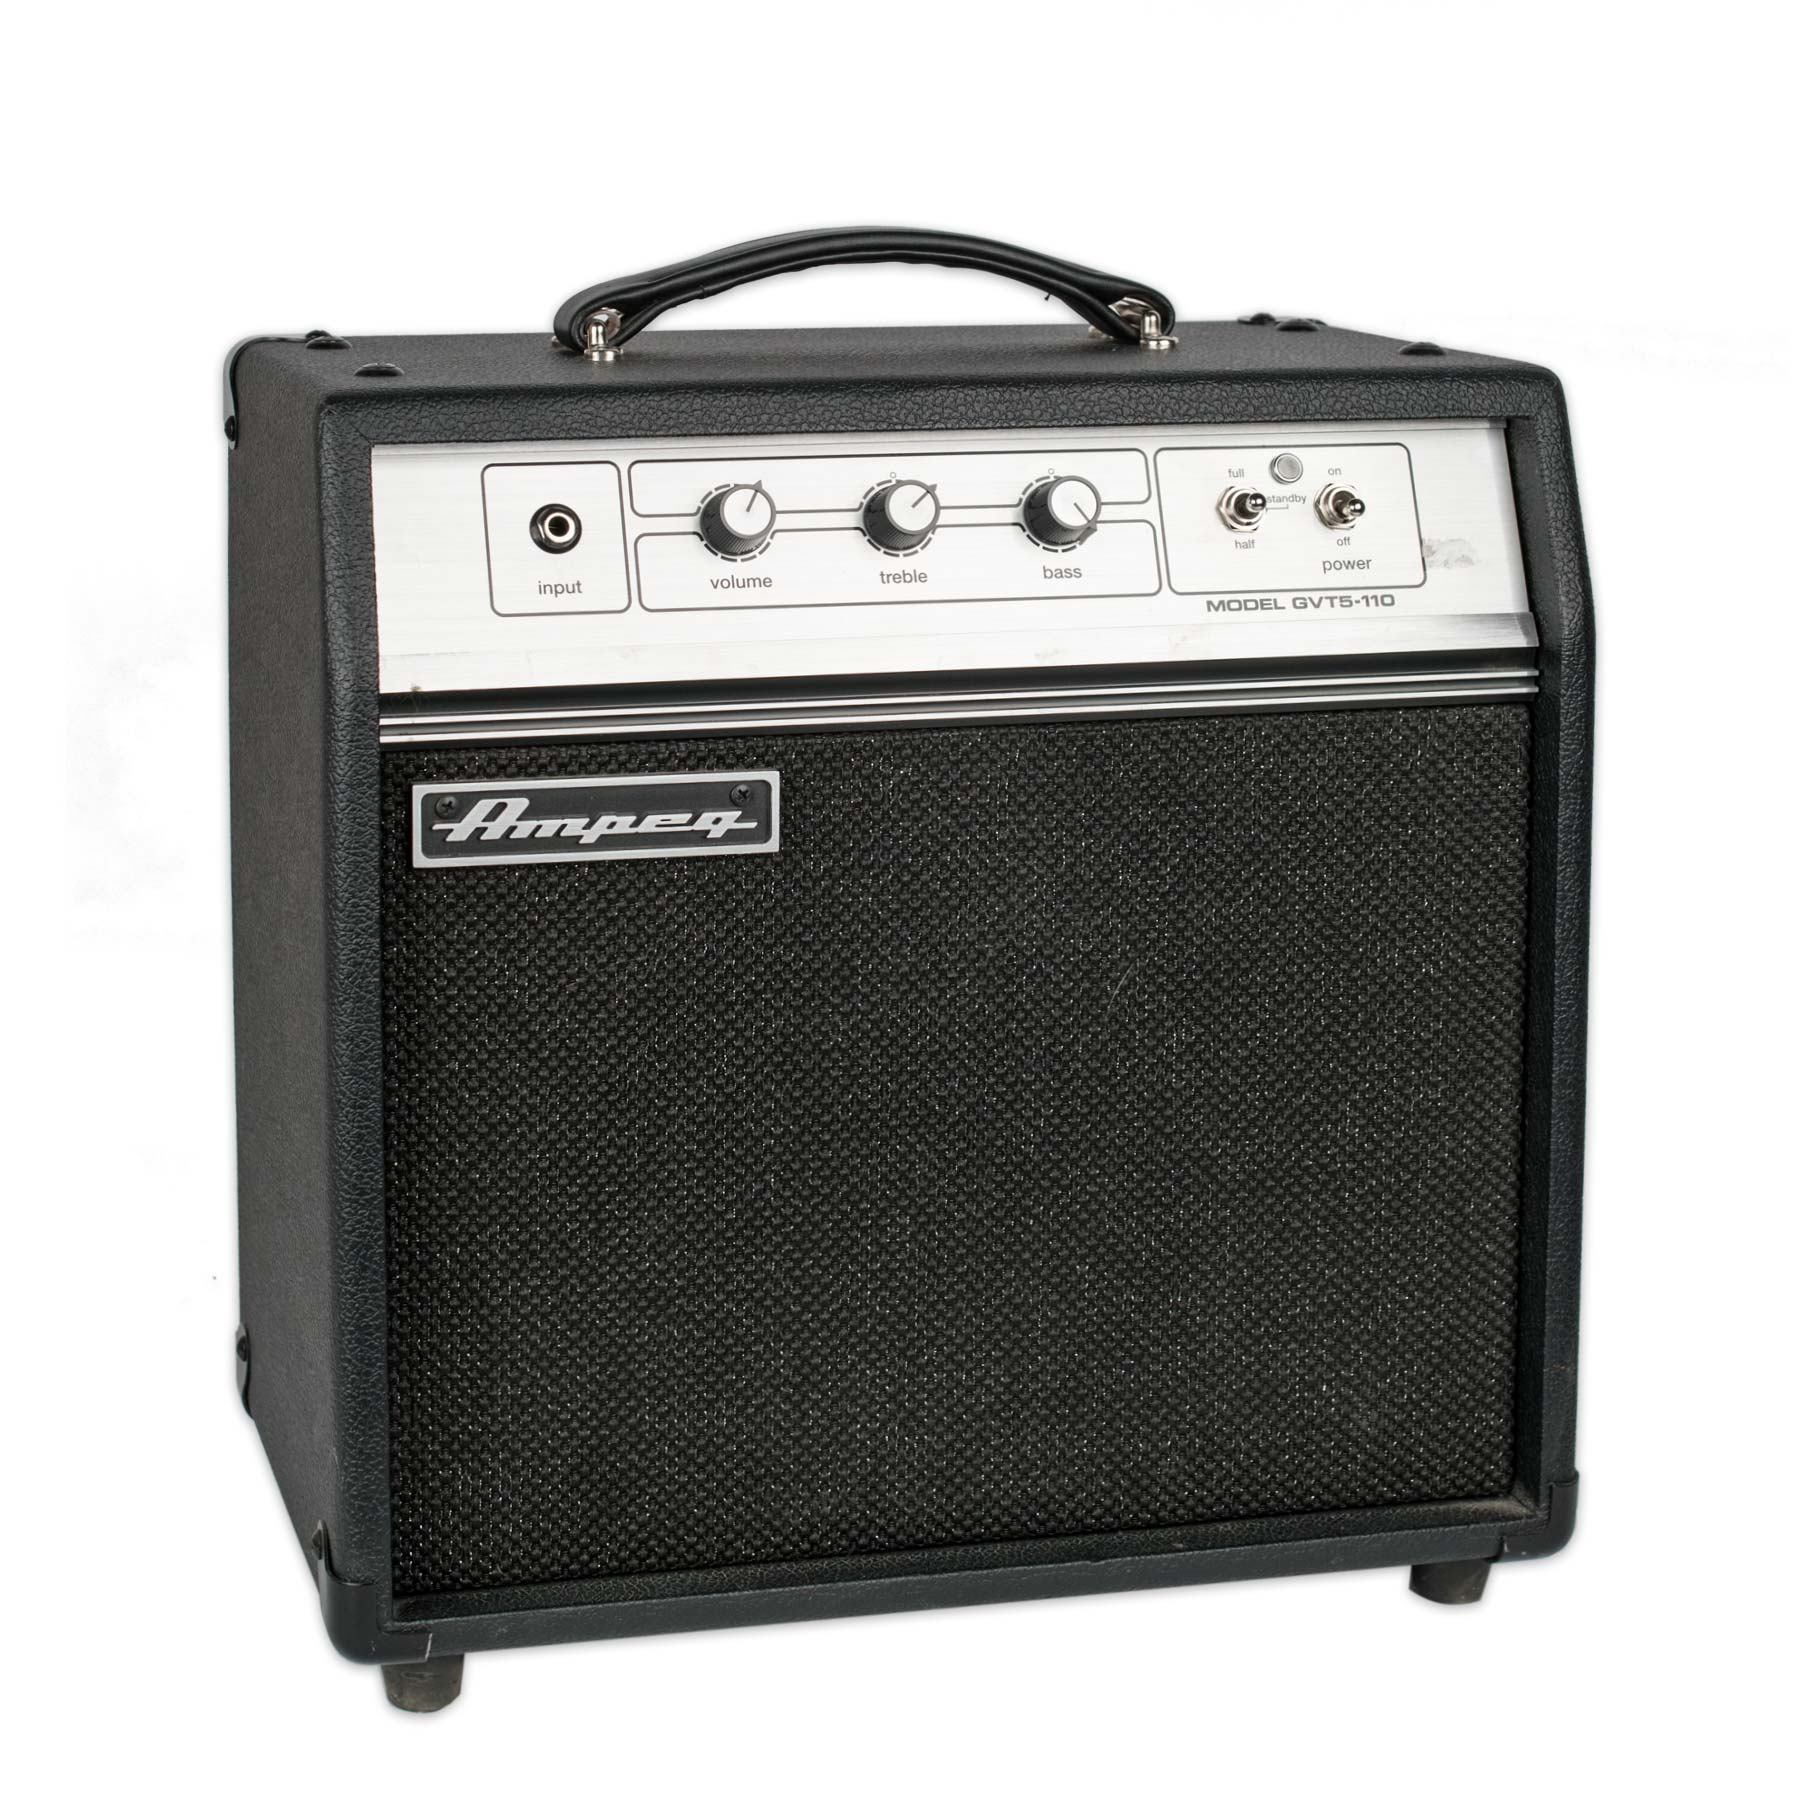 USED AMPEG GVT5 5 WATT TUBE GUITAR AMPLIFIER